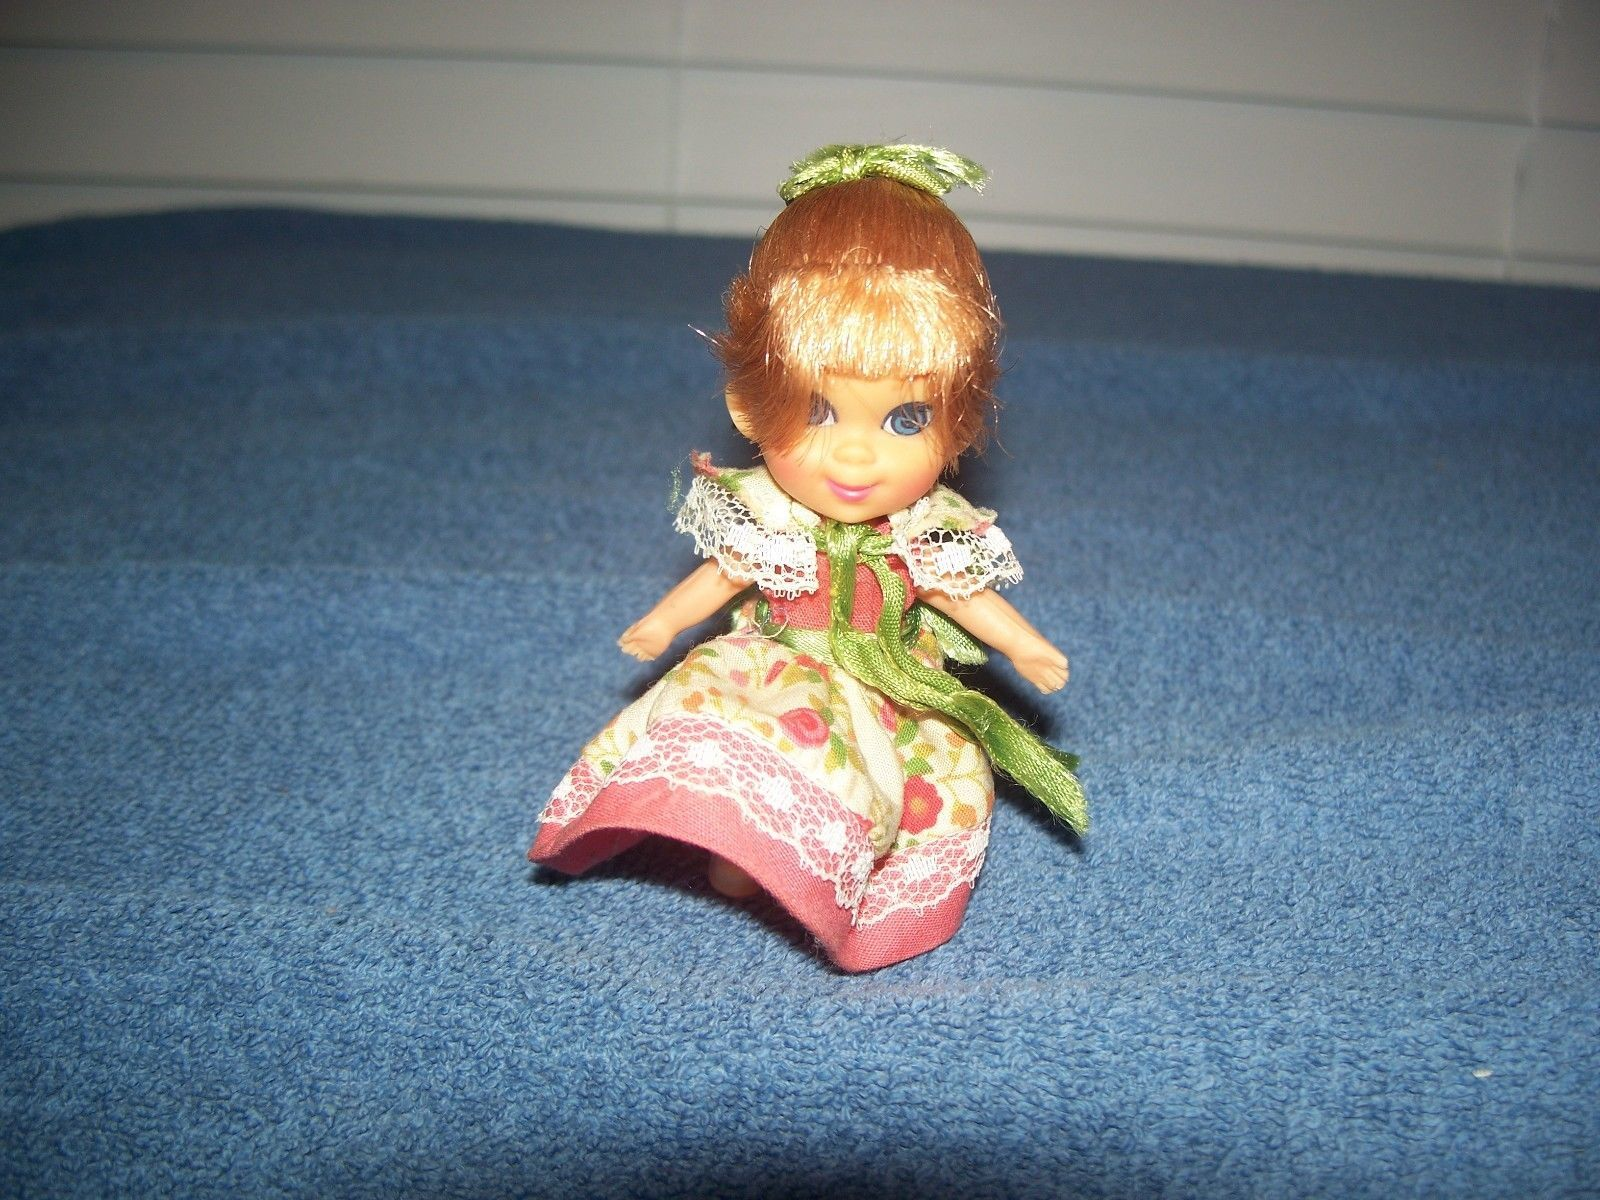 Vintage Little Miss Muffet Liddle Middle Kiddles Doll w/ Outfit ...